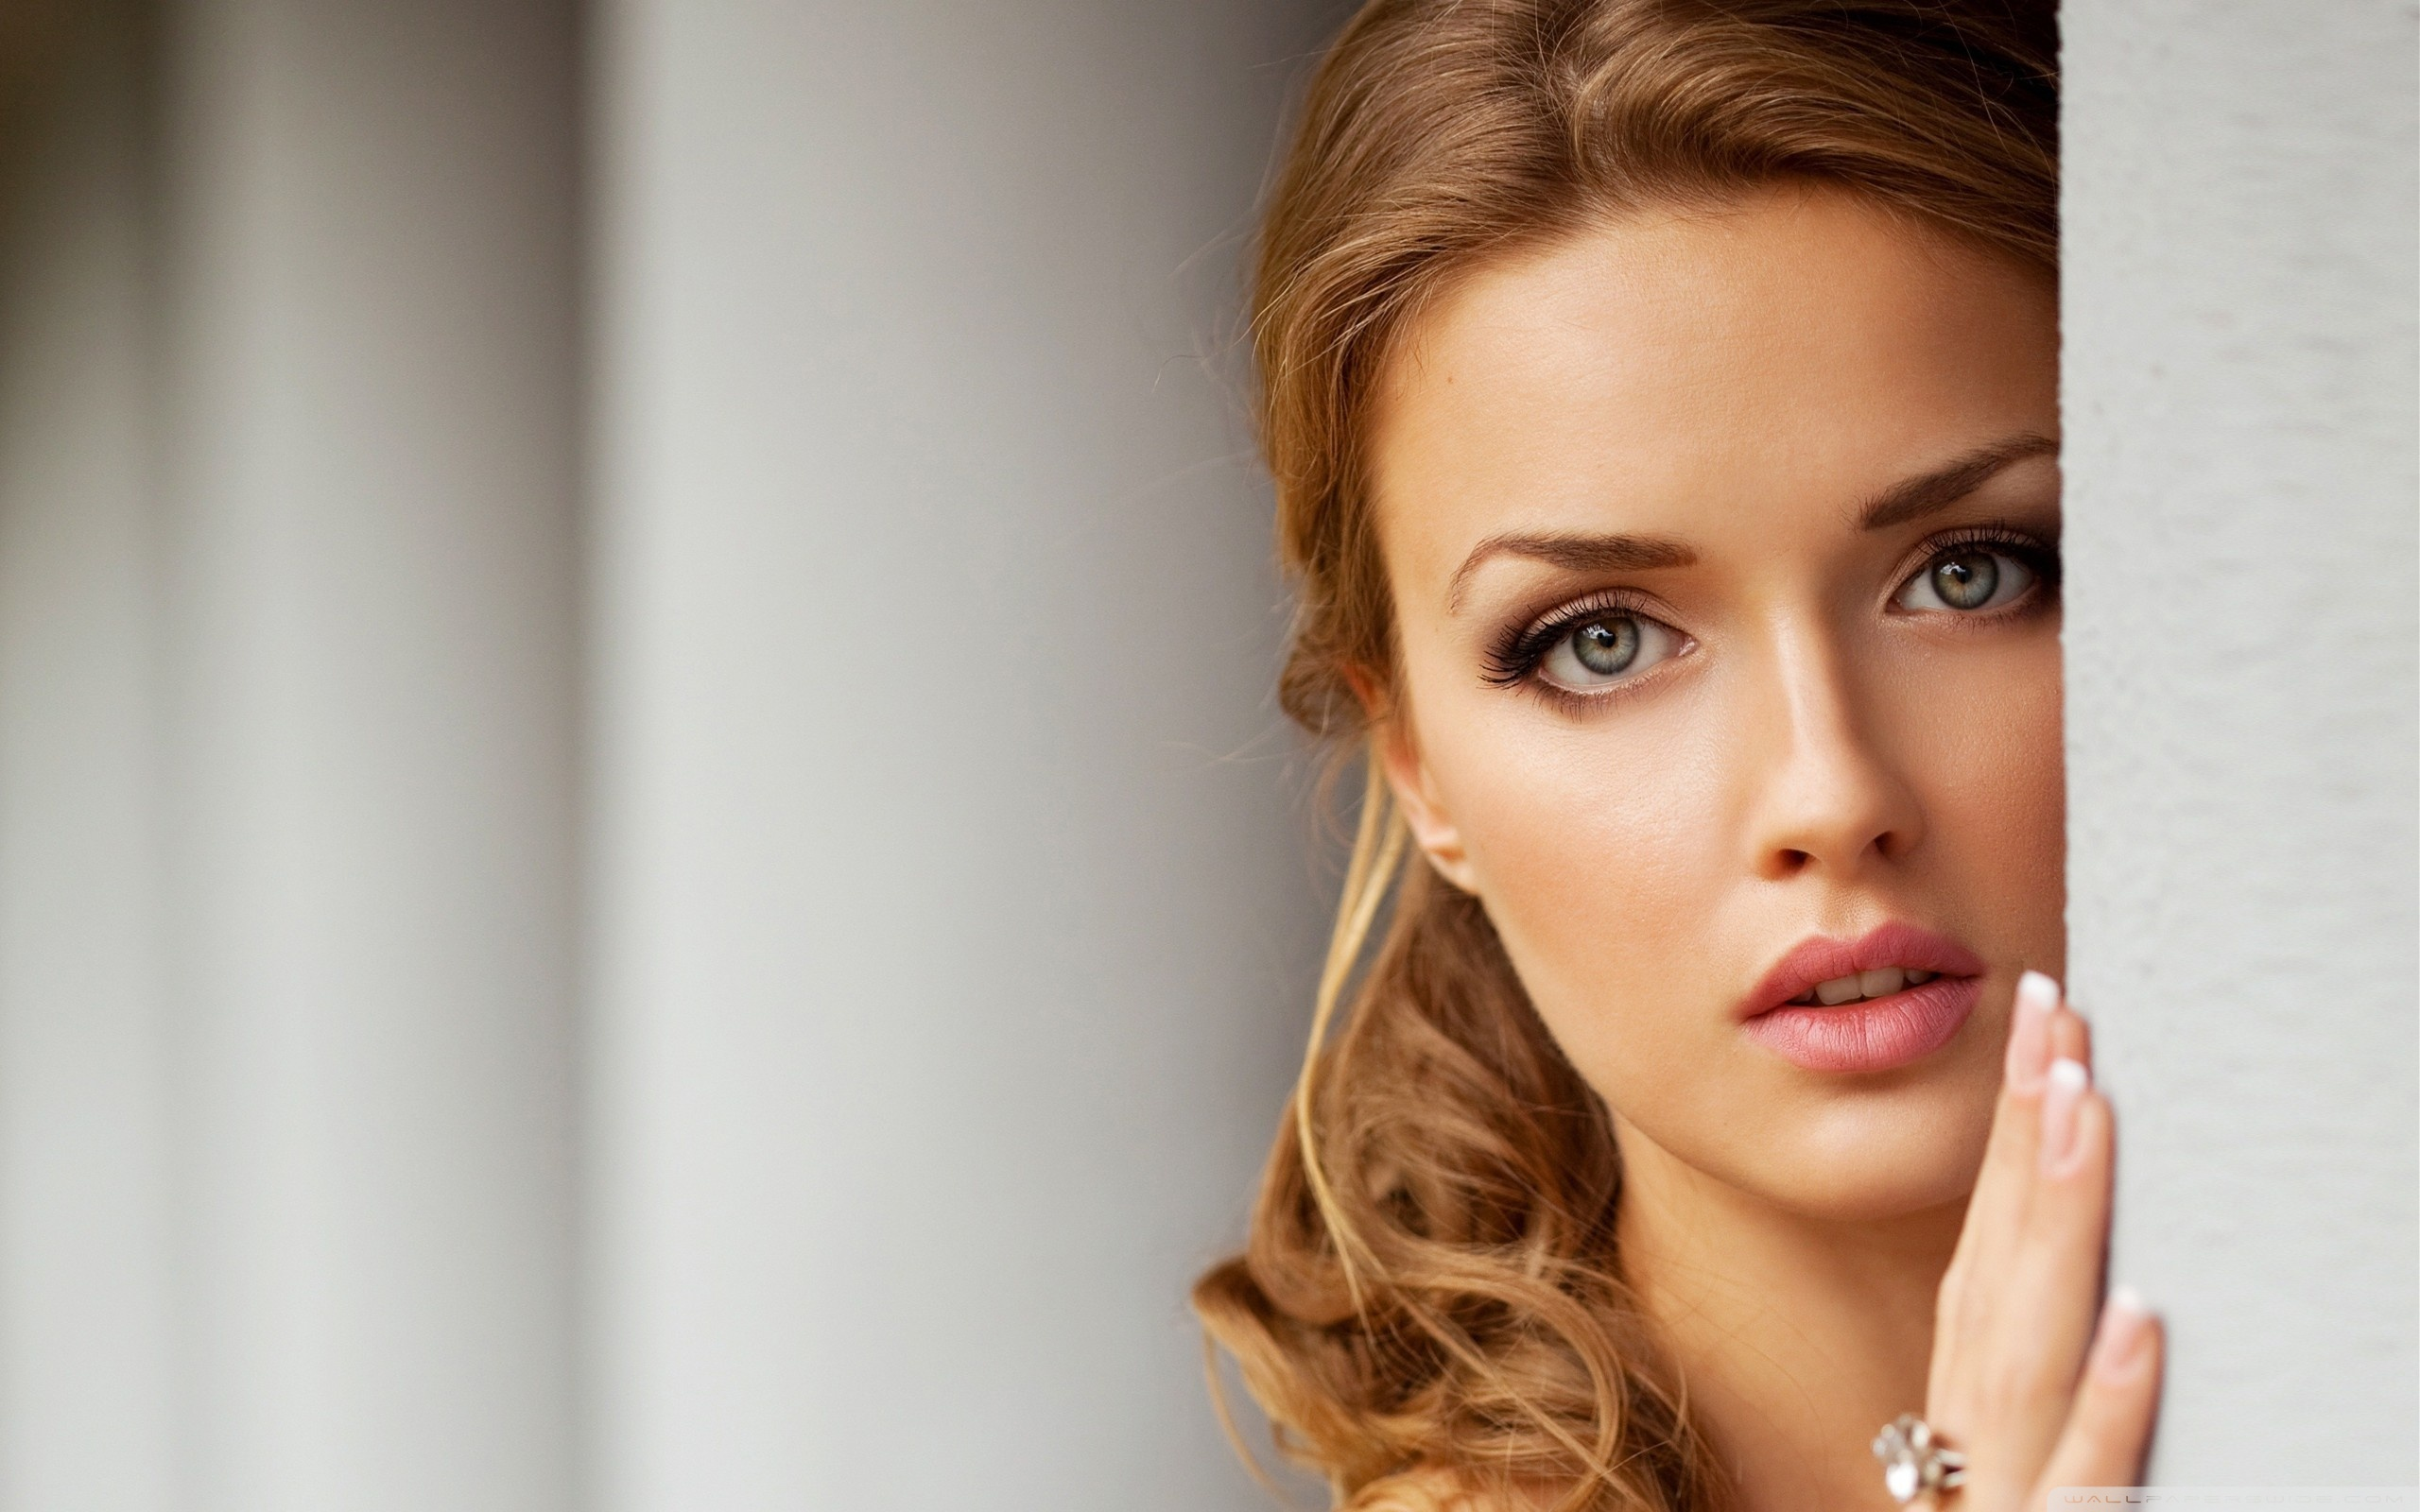 the latest HD Wallpapers collection of The Most Beautiful girls 2560x1600